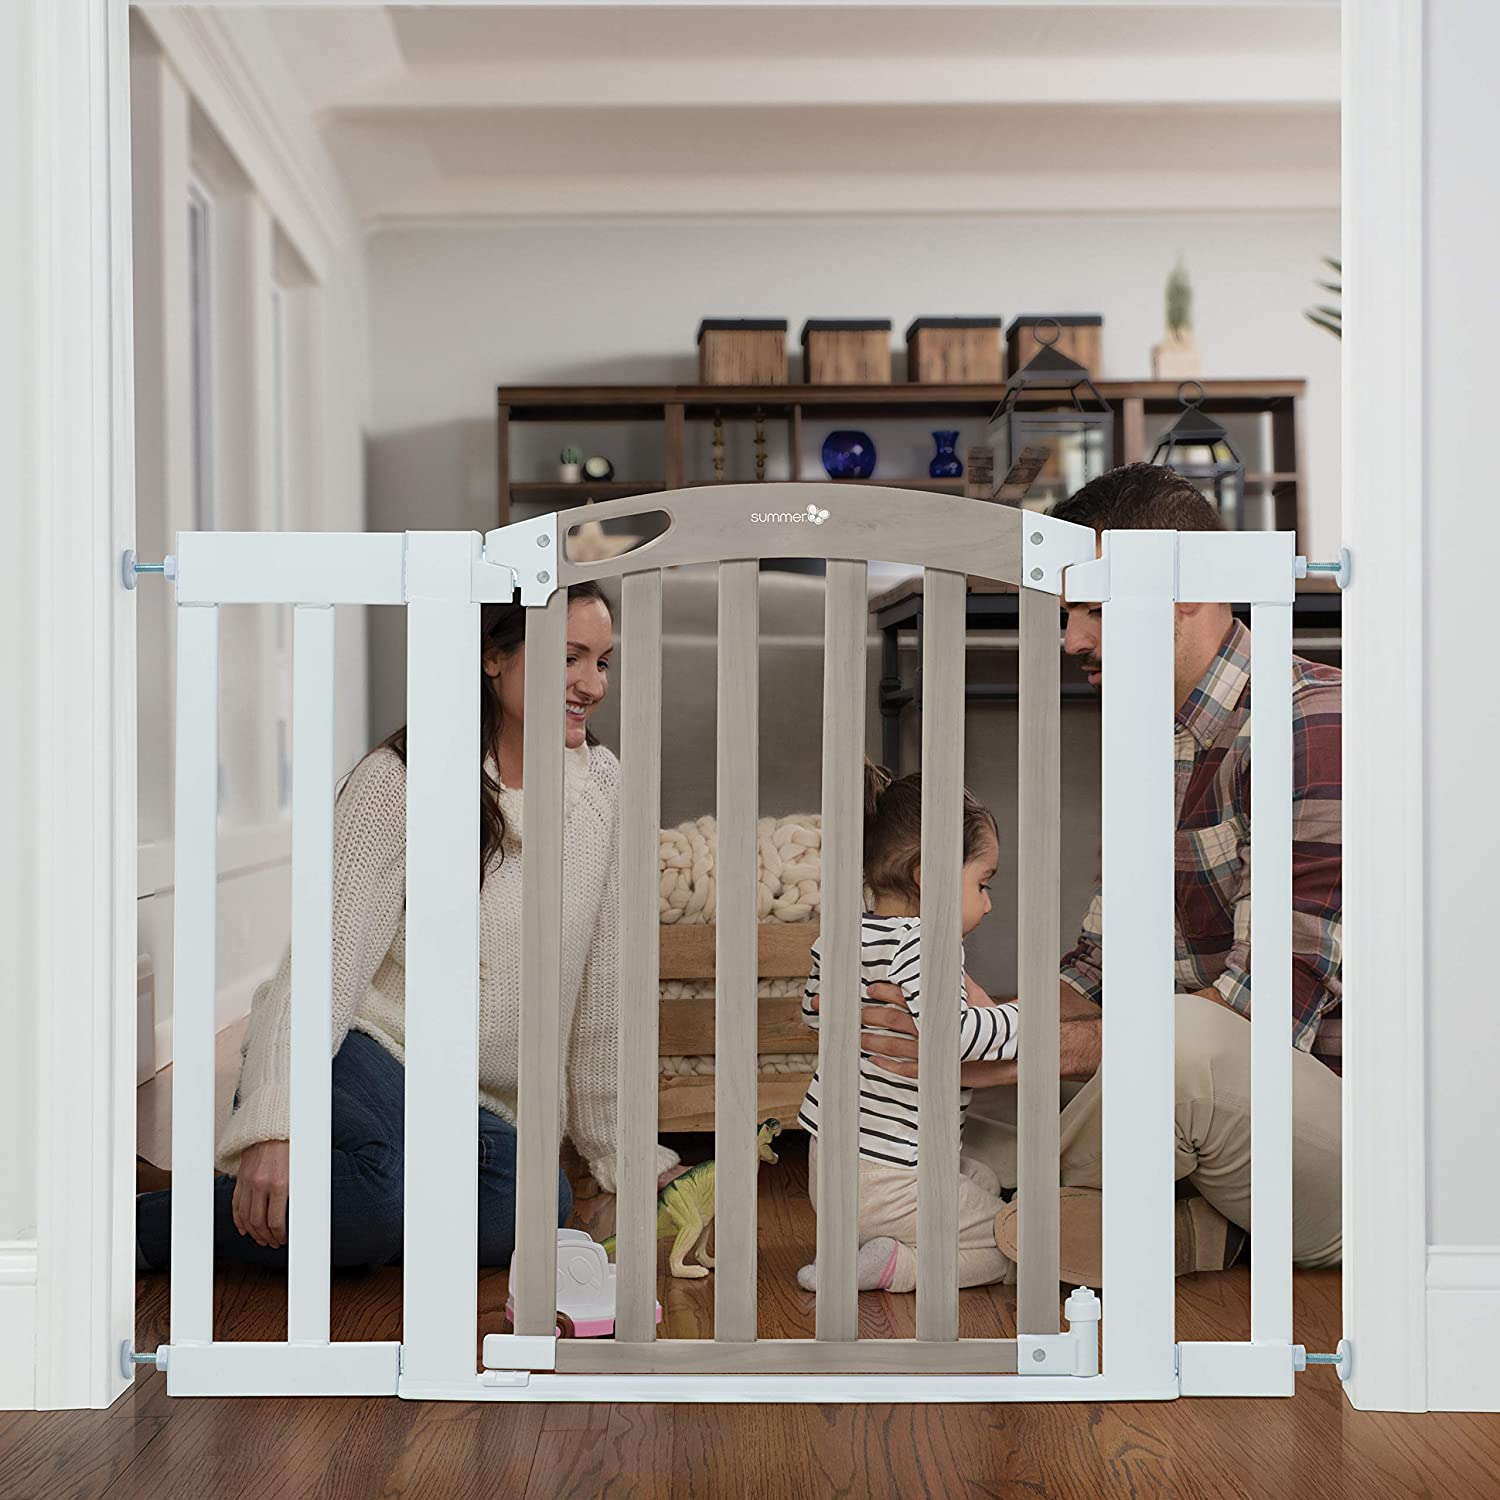 Summer Infant Chatham Post Safety Gate for Doorways & Stairways, with Auto-Close & Hold-Open, Grey Wash & White, 28.5 - 42 Inch